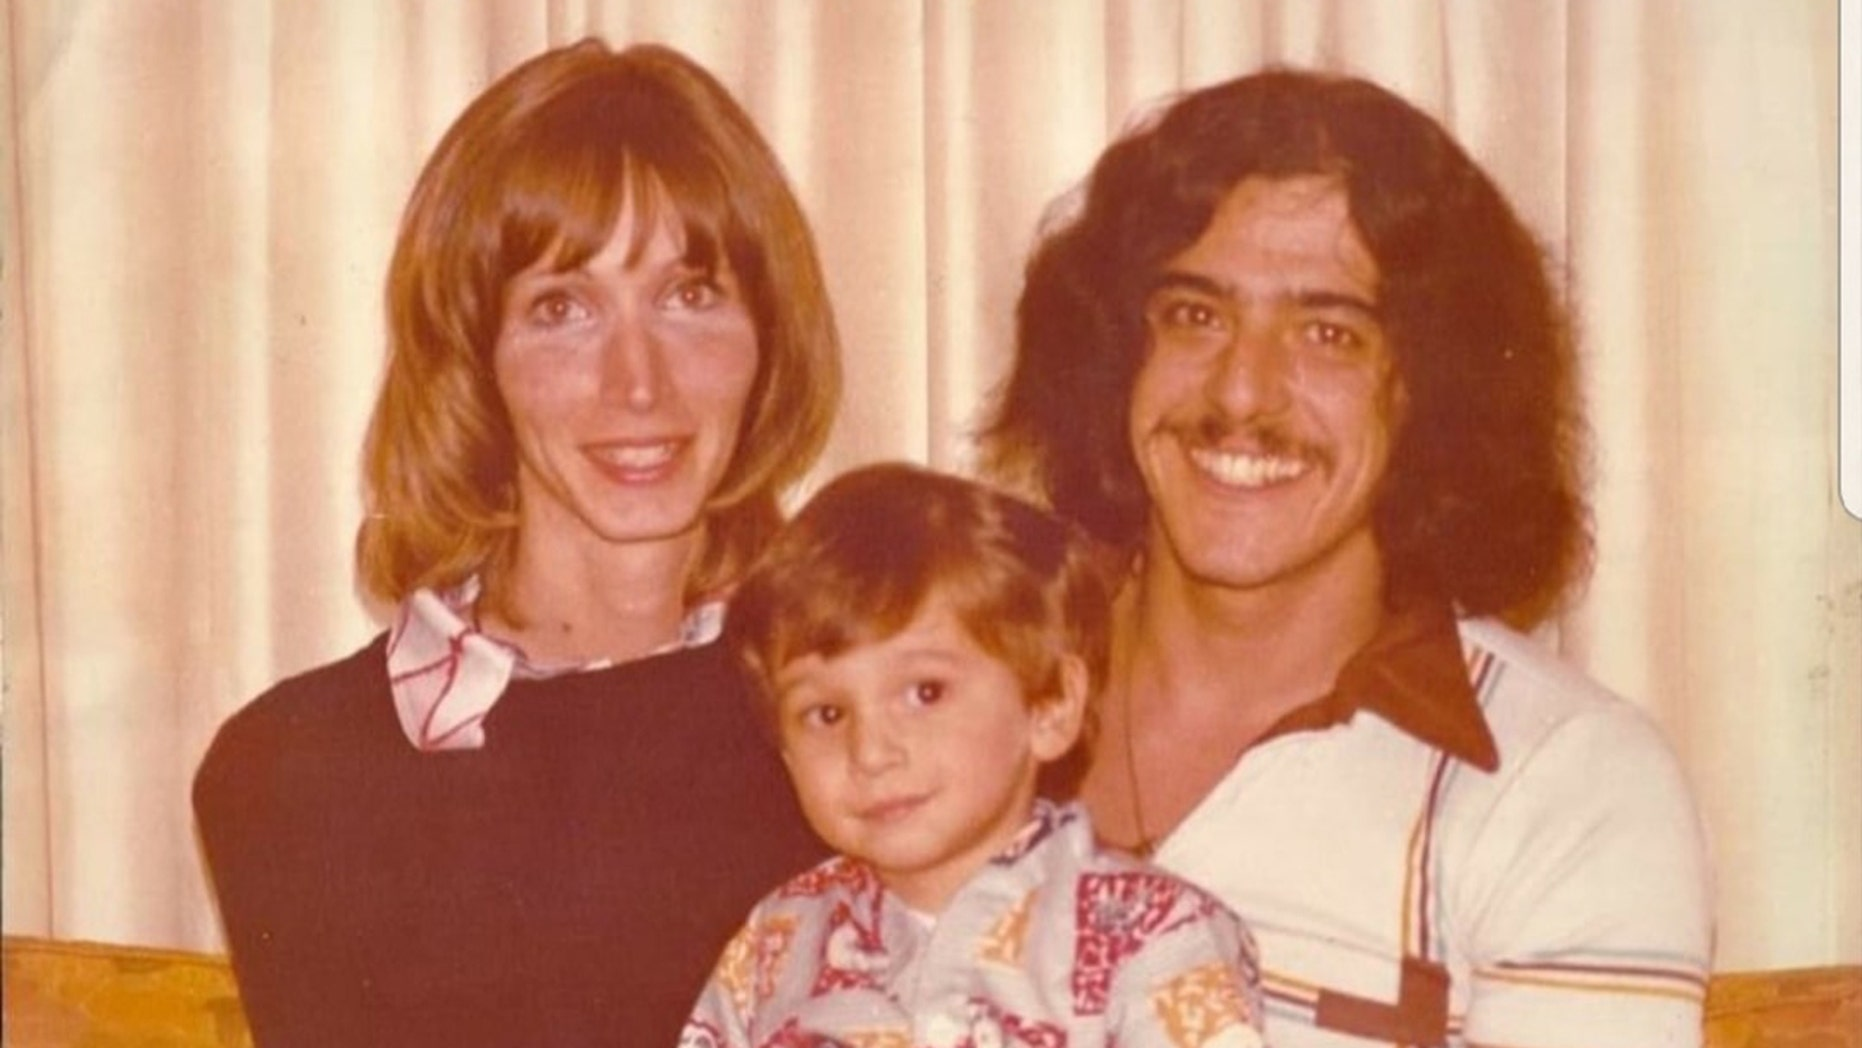 Joan Deal, Jason Deal, and Gary Deal were found dead in their home in southern New Jersey on Oct. 30, 1978.